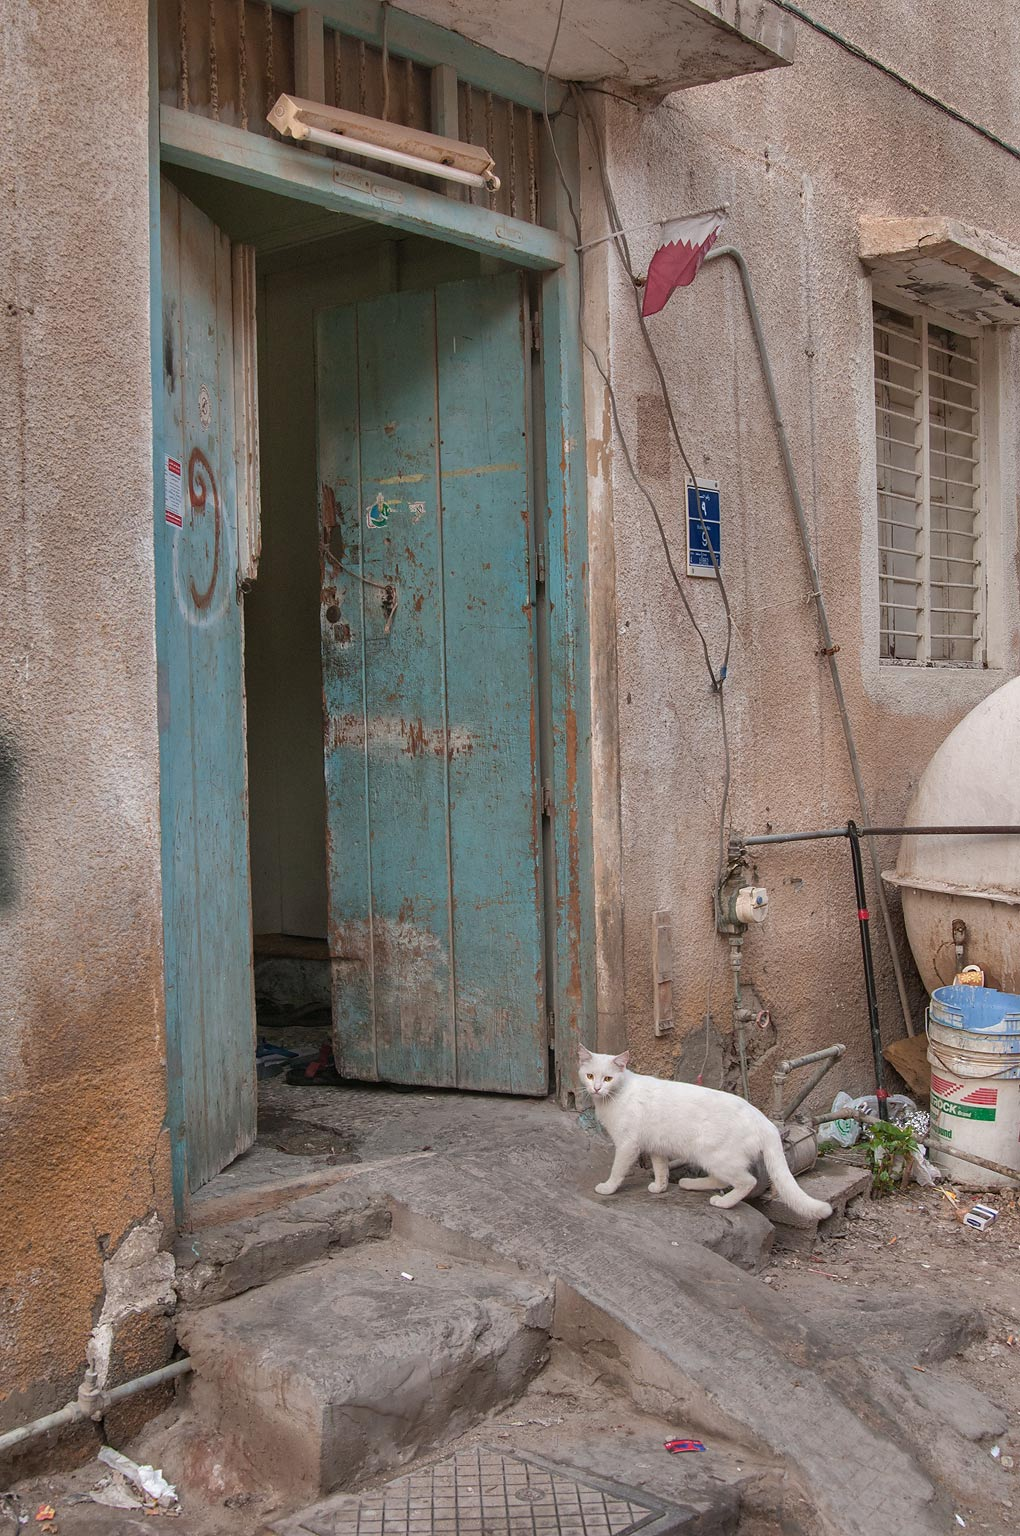 White cat near Al Jassasiya St., Musheirib area. Doha, Qatar